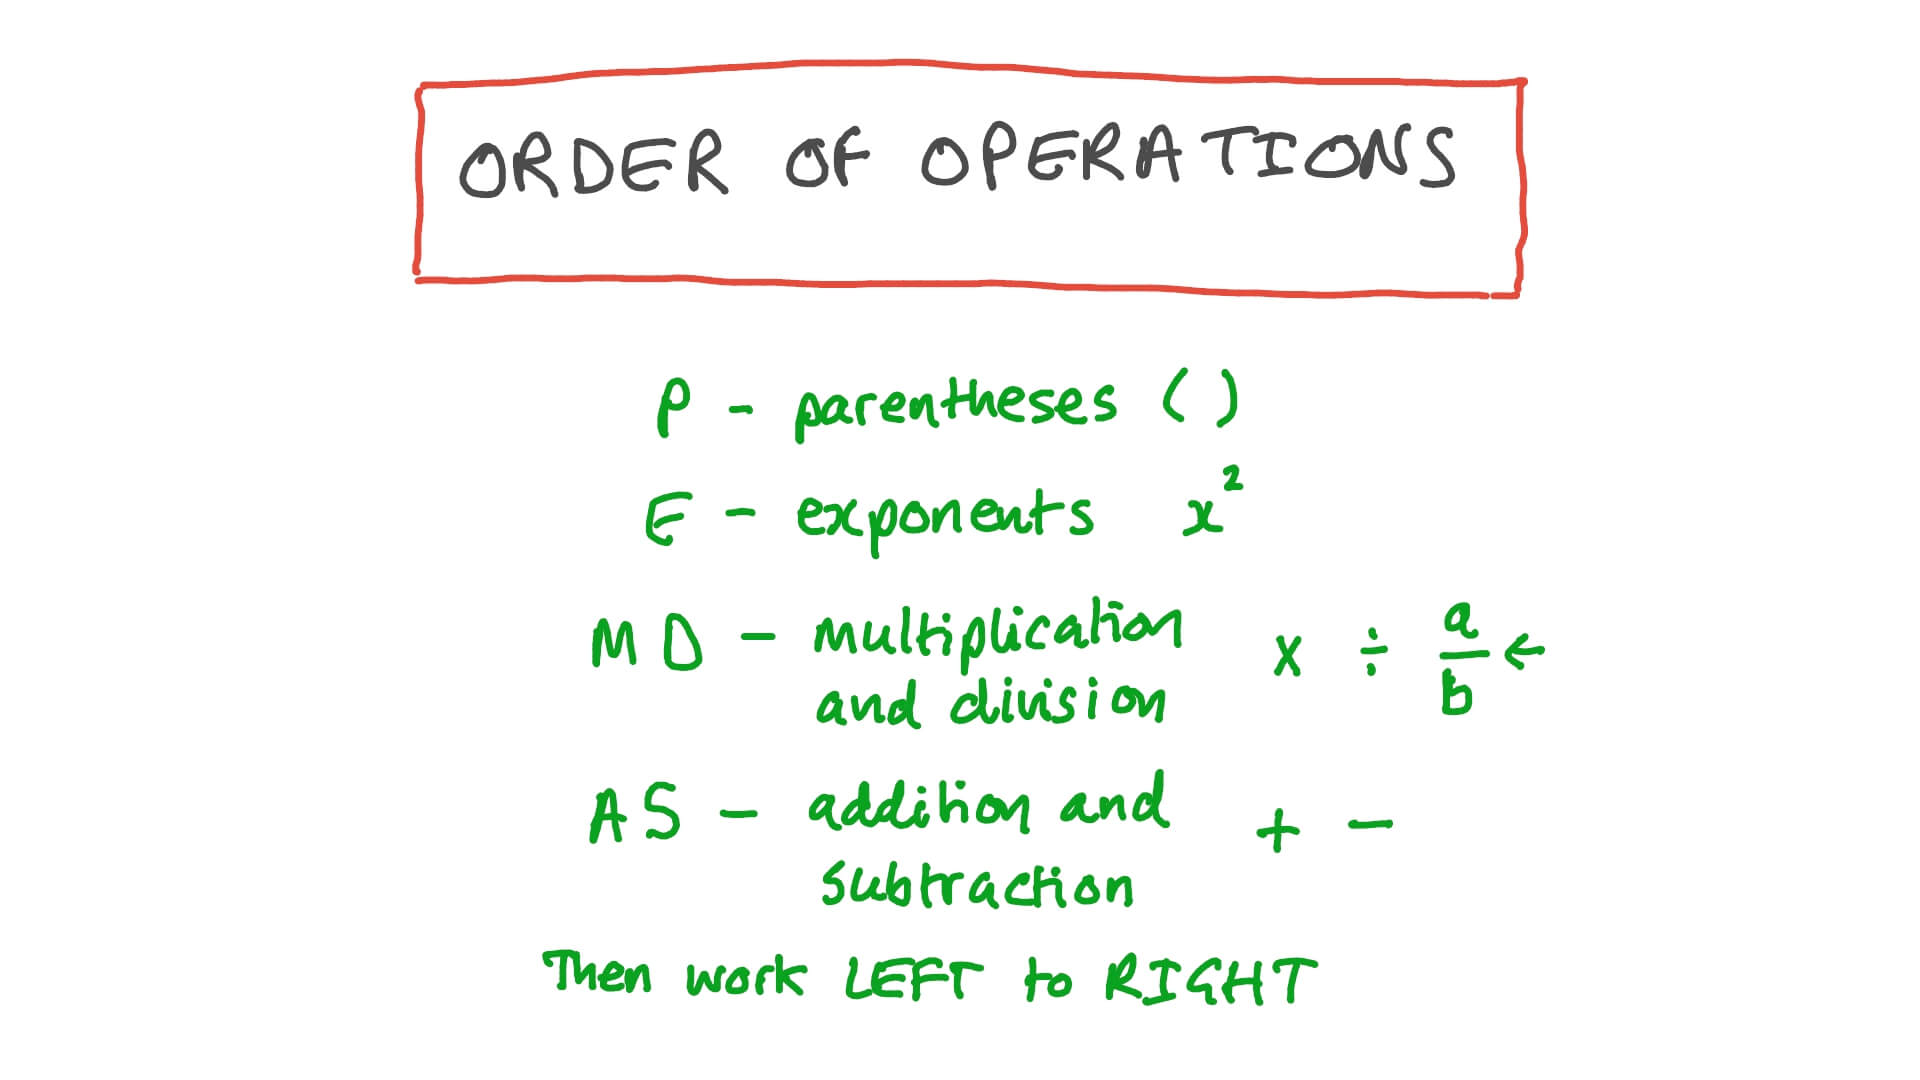 hight resolution of Lesson: Order of Operations: Evaluate Numerical Expressions   Nagwa